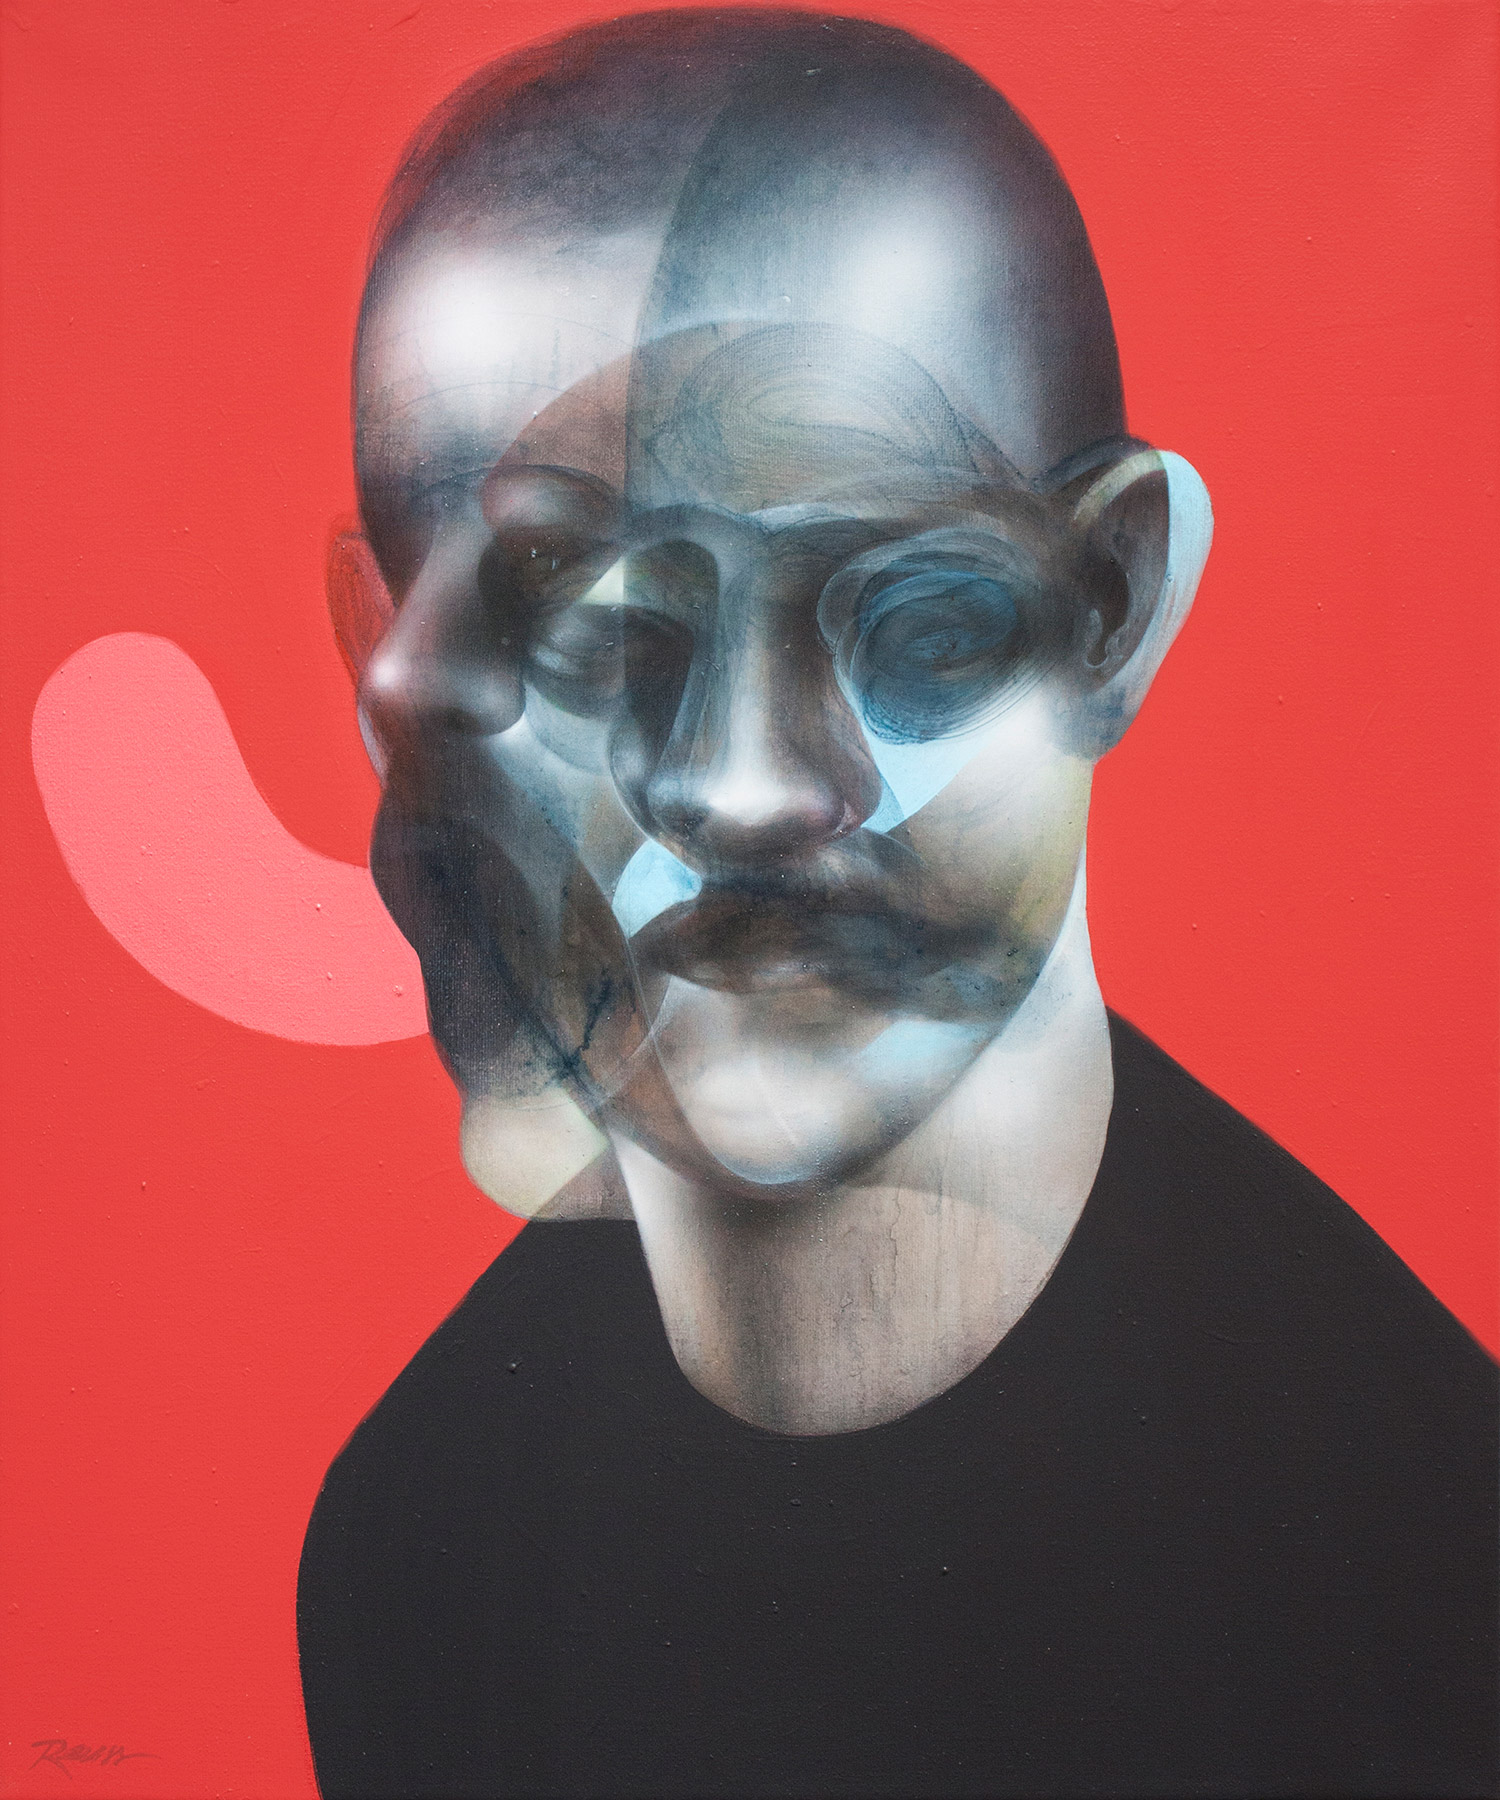 John Reuss - head with blurred, multiple faces and red backdrop